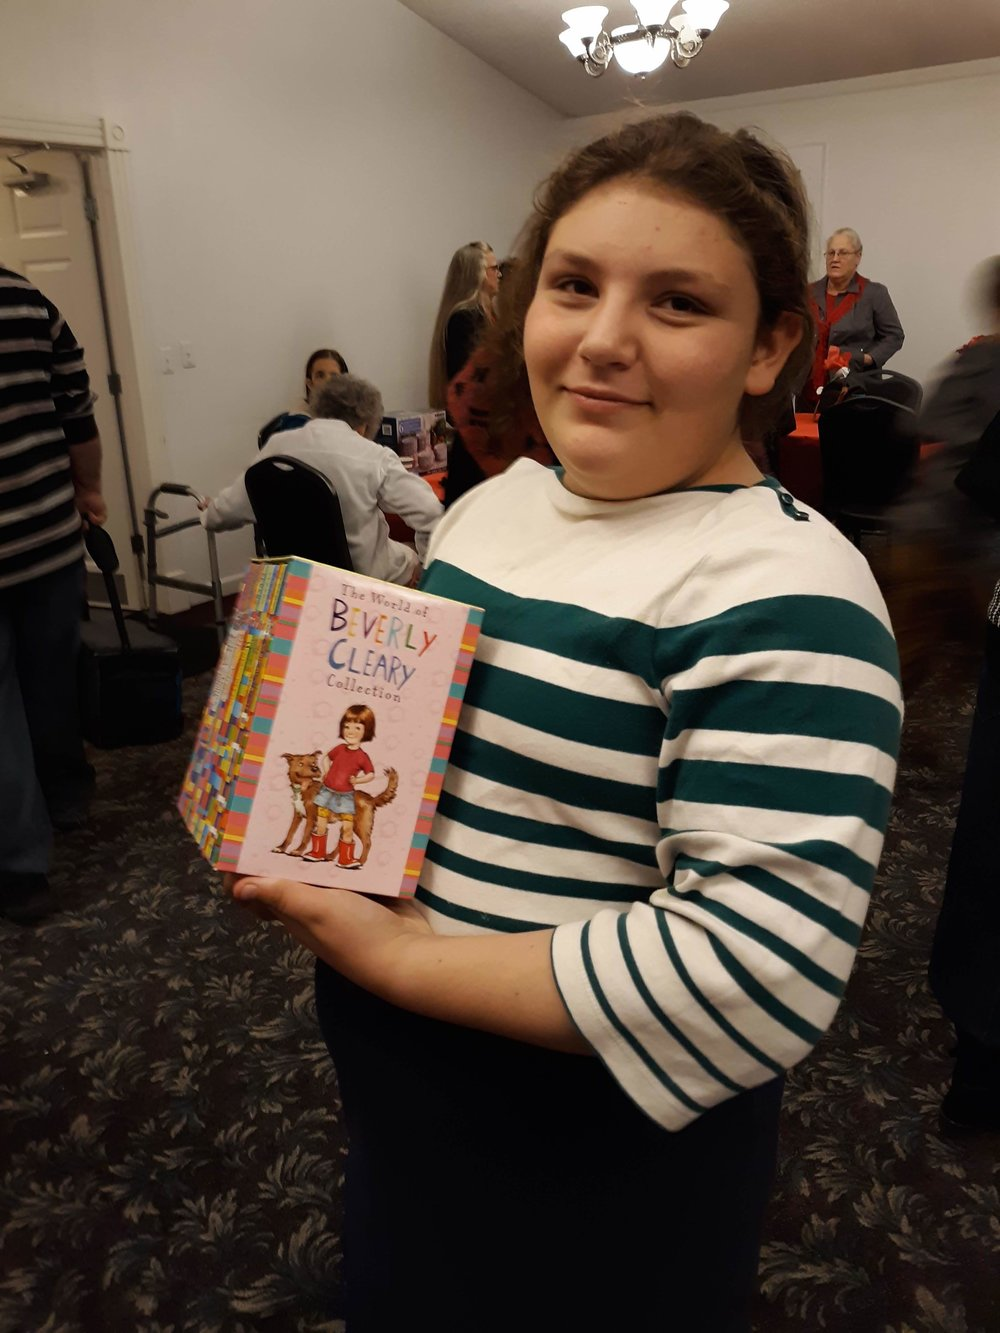 Fantasia, an avid reader, got Beverly Cleary books for Christmas